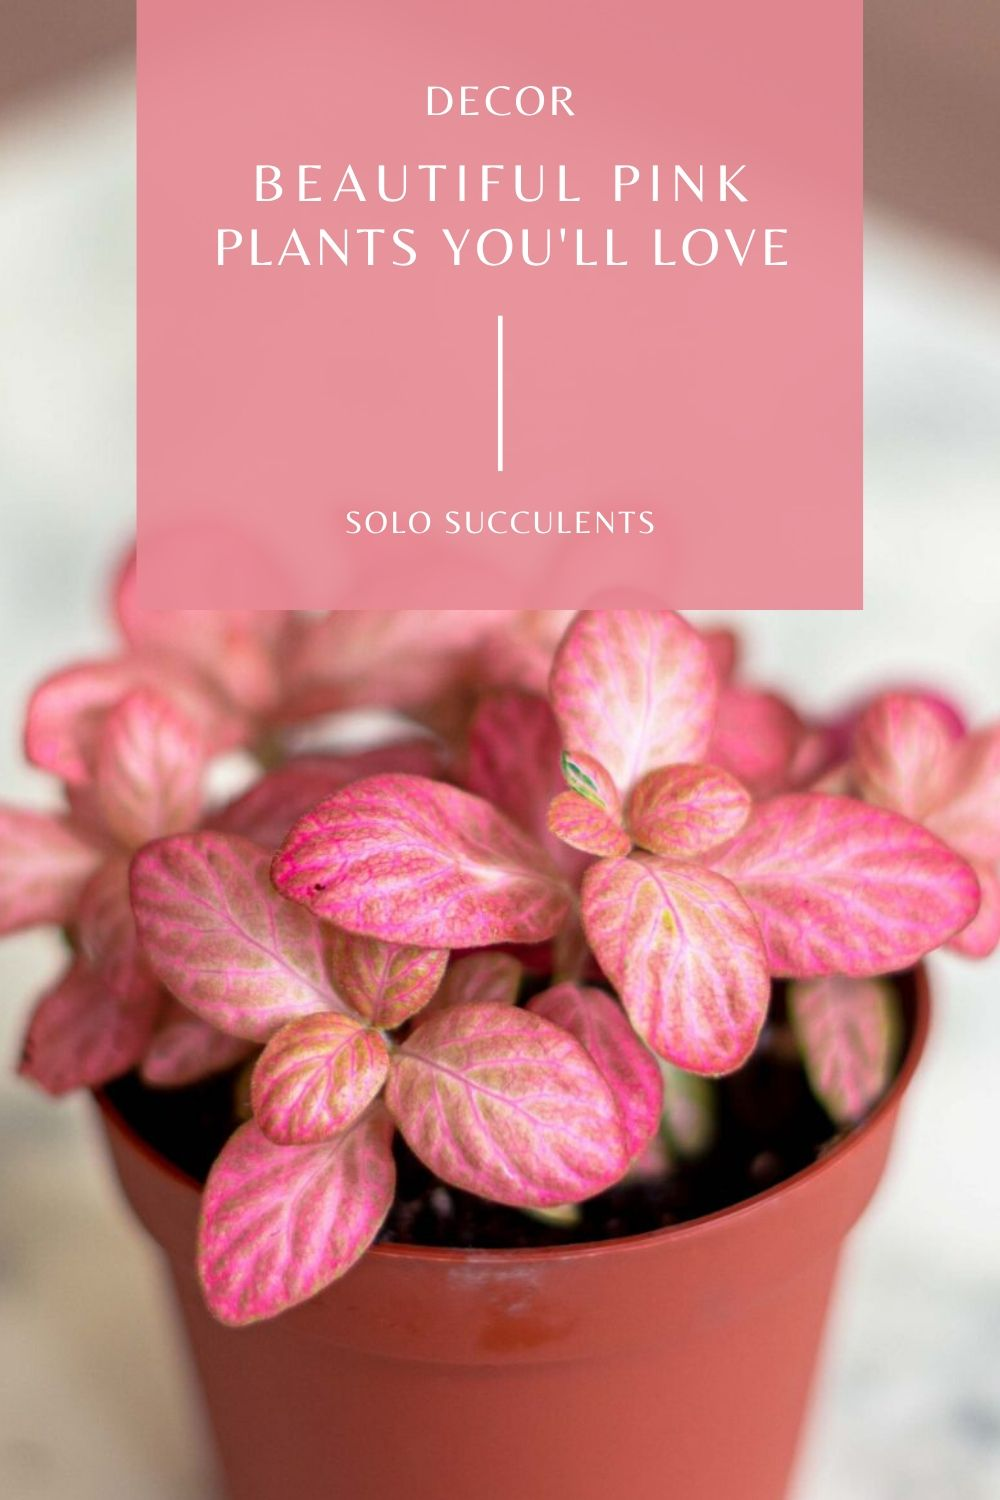 looking for some pretty foliage in your houseplants? Pink Plants You'll Love (Which Will Brighten up Your Home!)